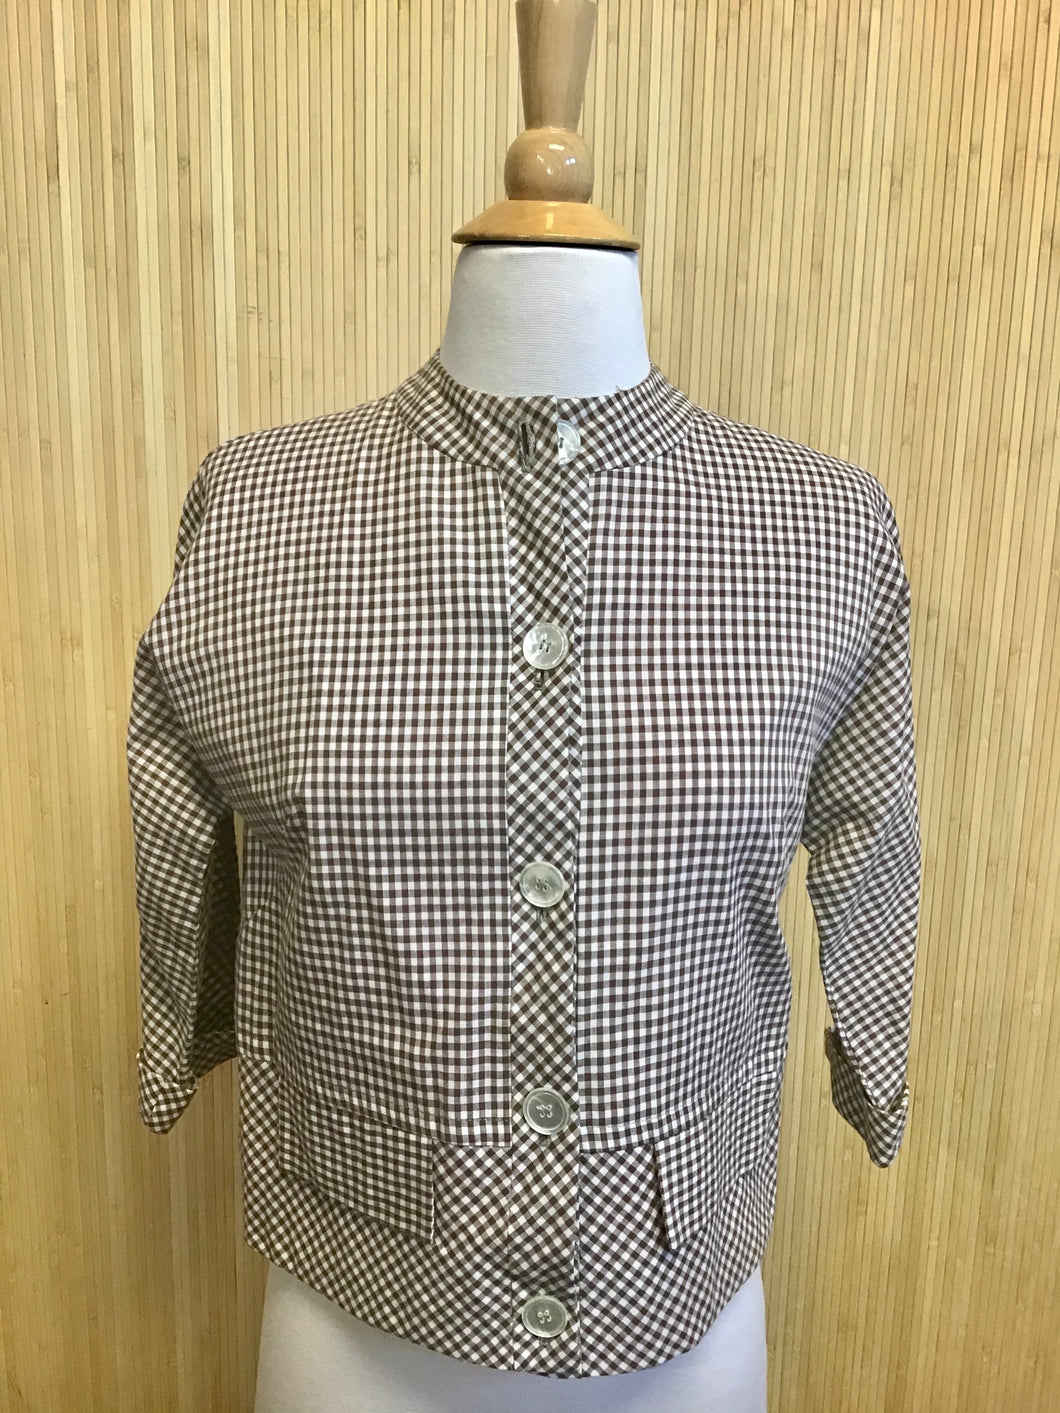 Gingham Top from Year Rouder (S)